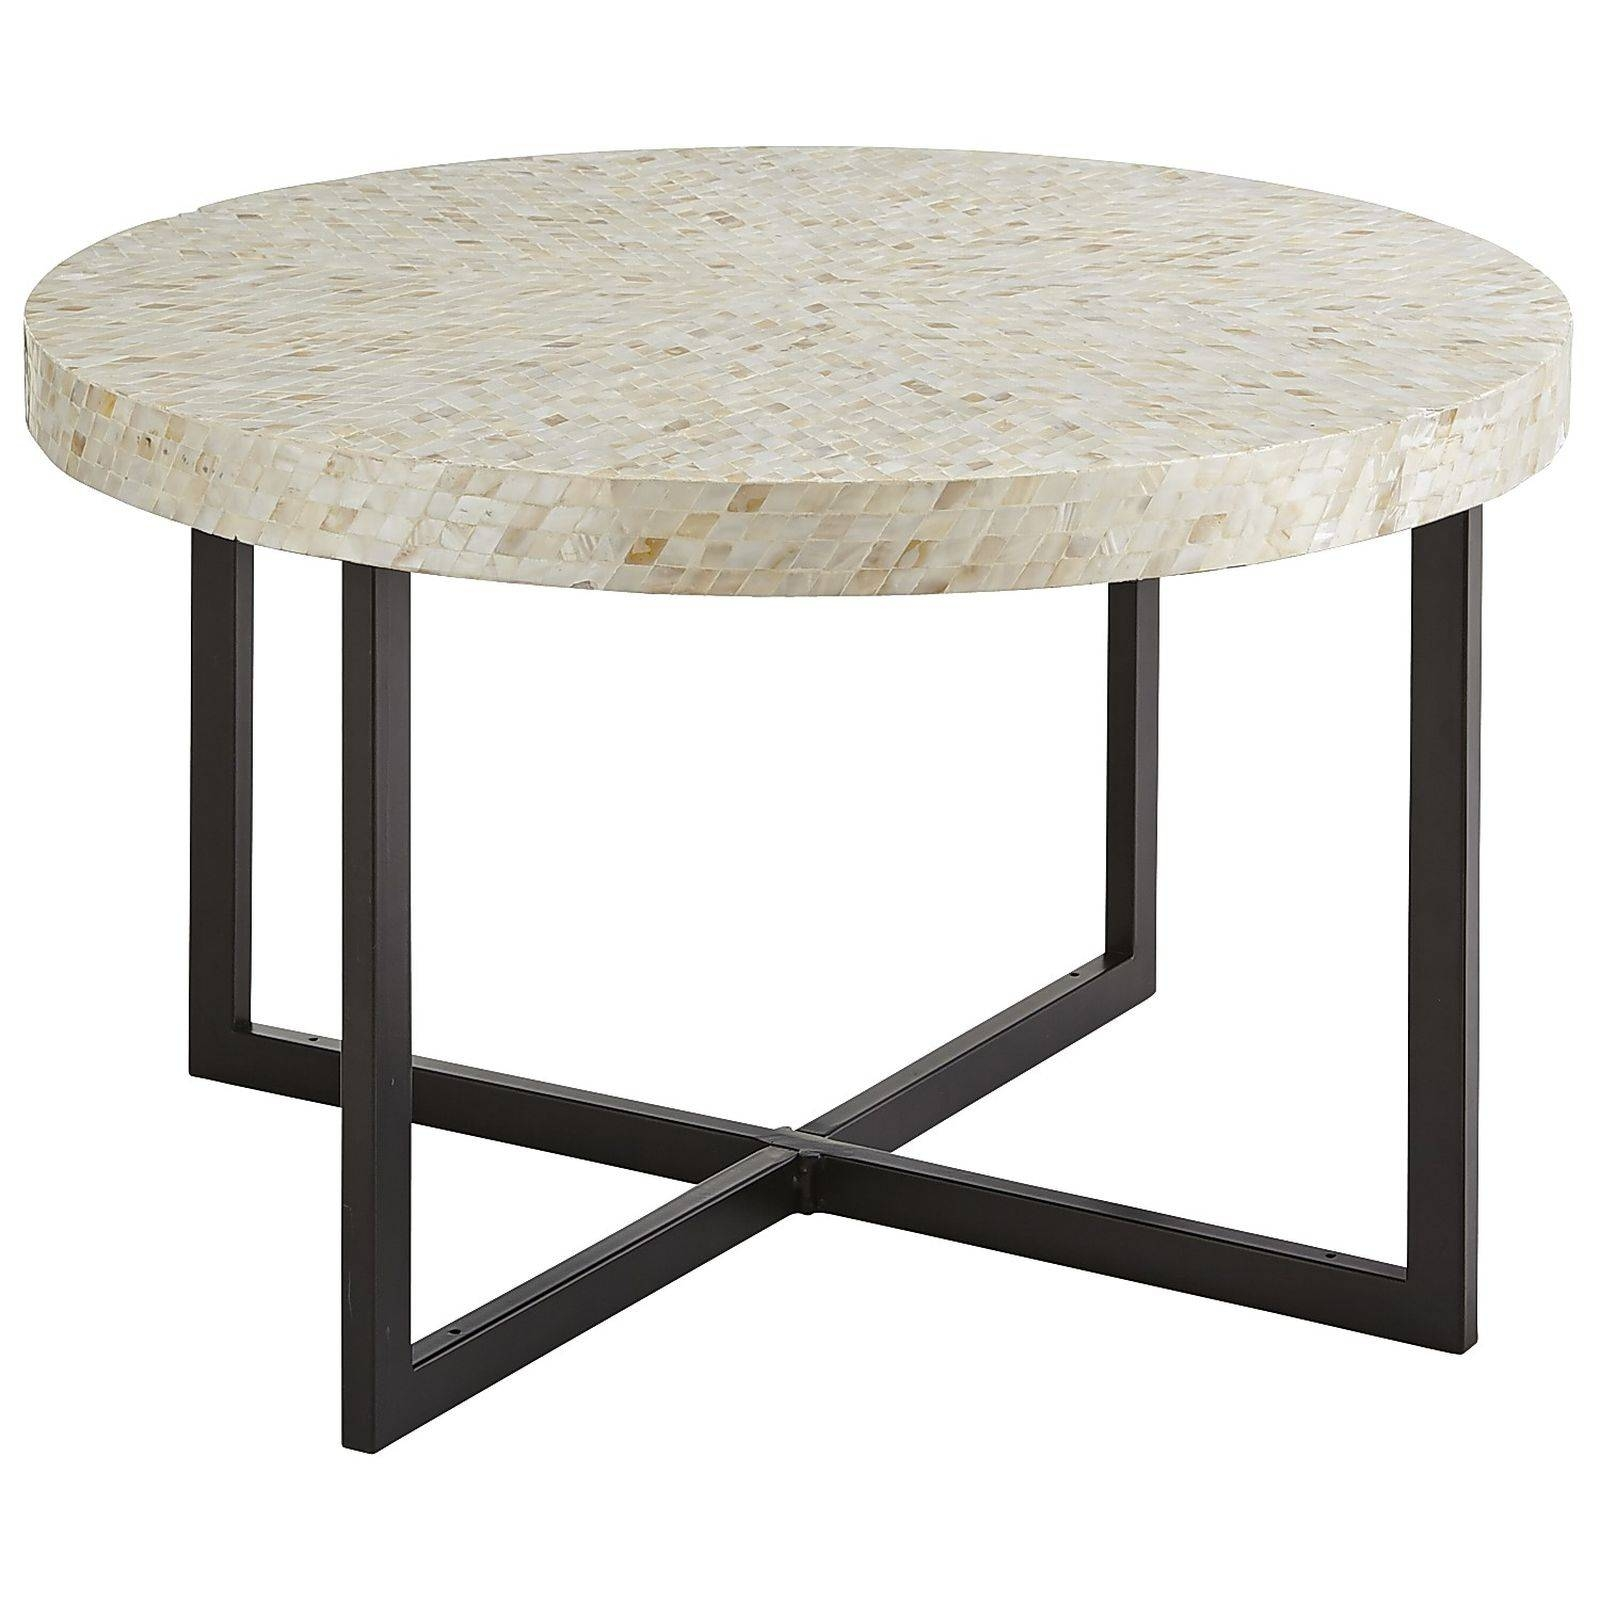 Coffee Tables: Astounding Round Coffee Tables Ideas Round Coffee within Marble Round Coffee Tables (Image 14 of 30)